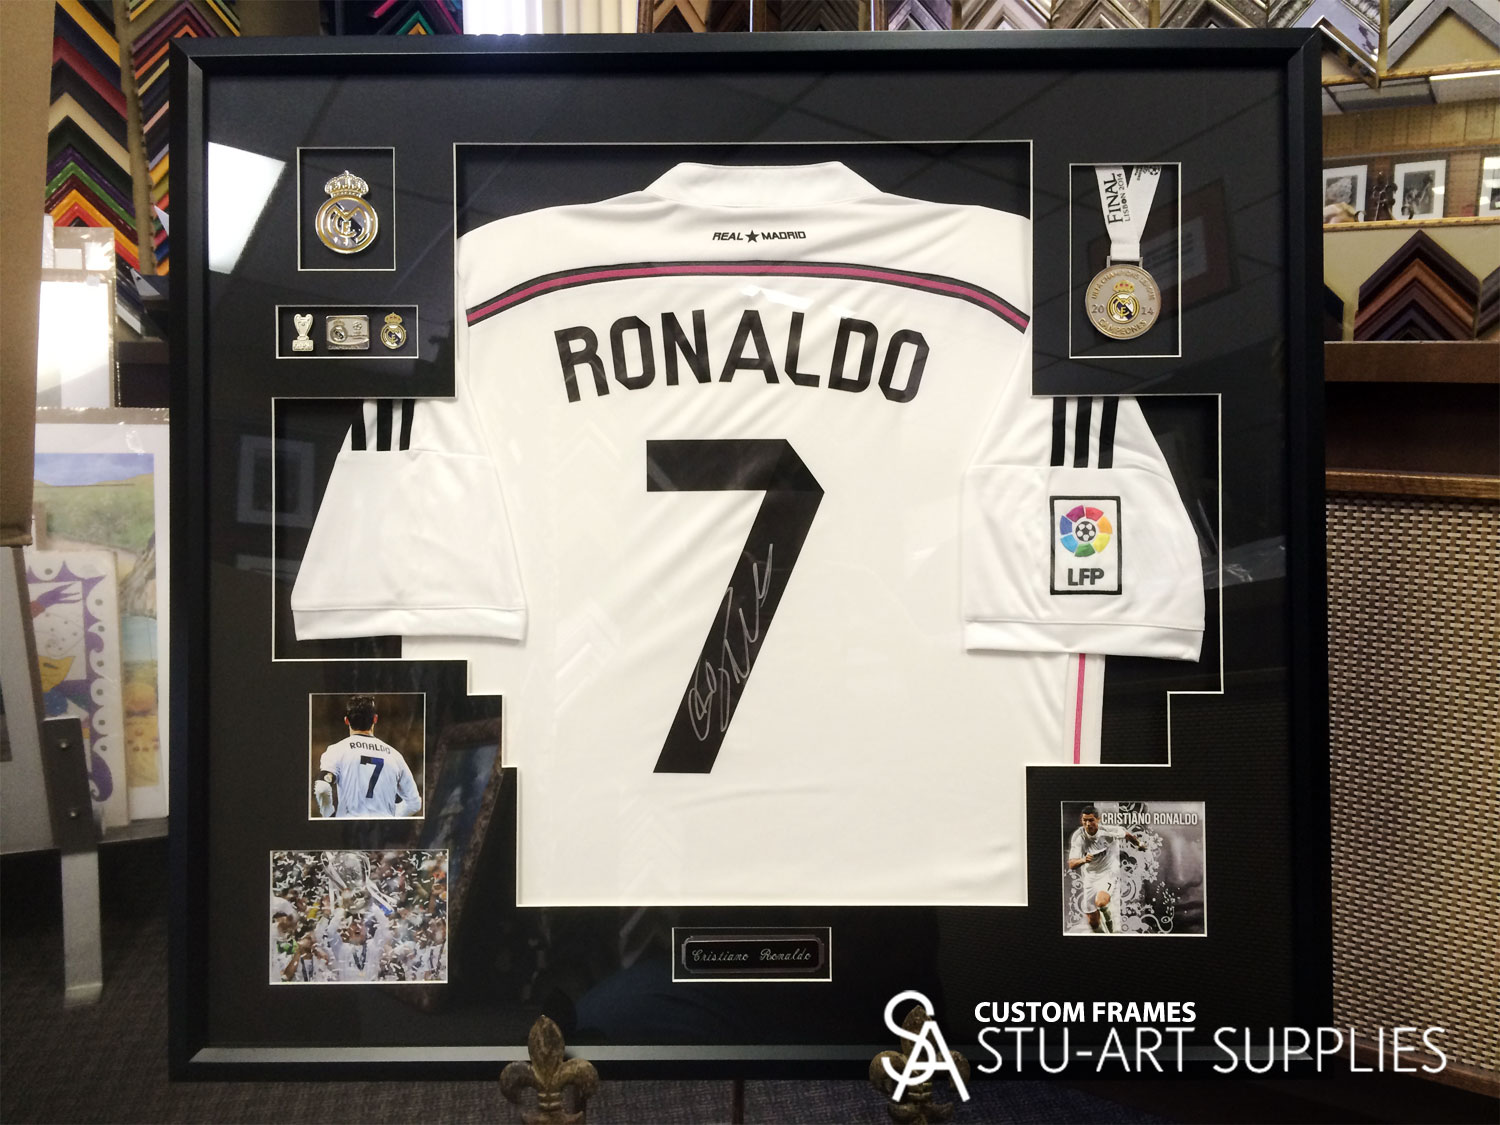 1ed4a41b9 Custom framed Cristiano Ronaldo soccer jersey - Stu-Art Supplies ...